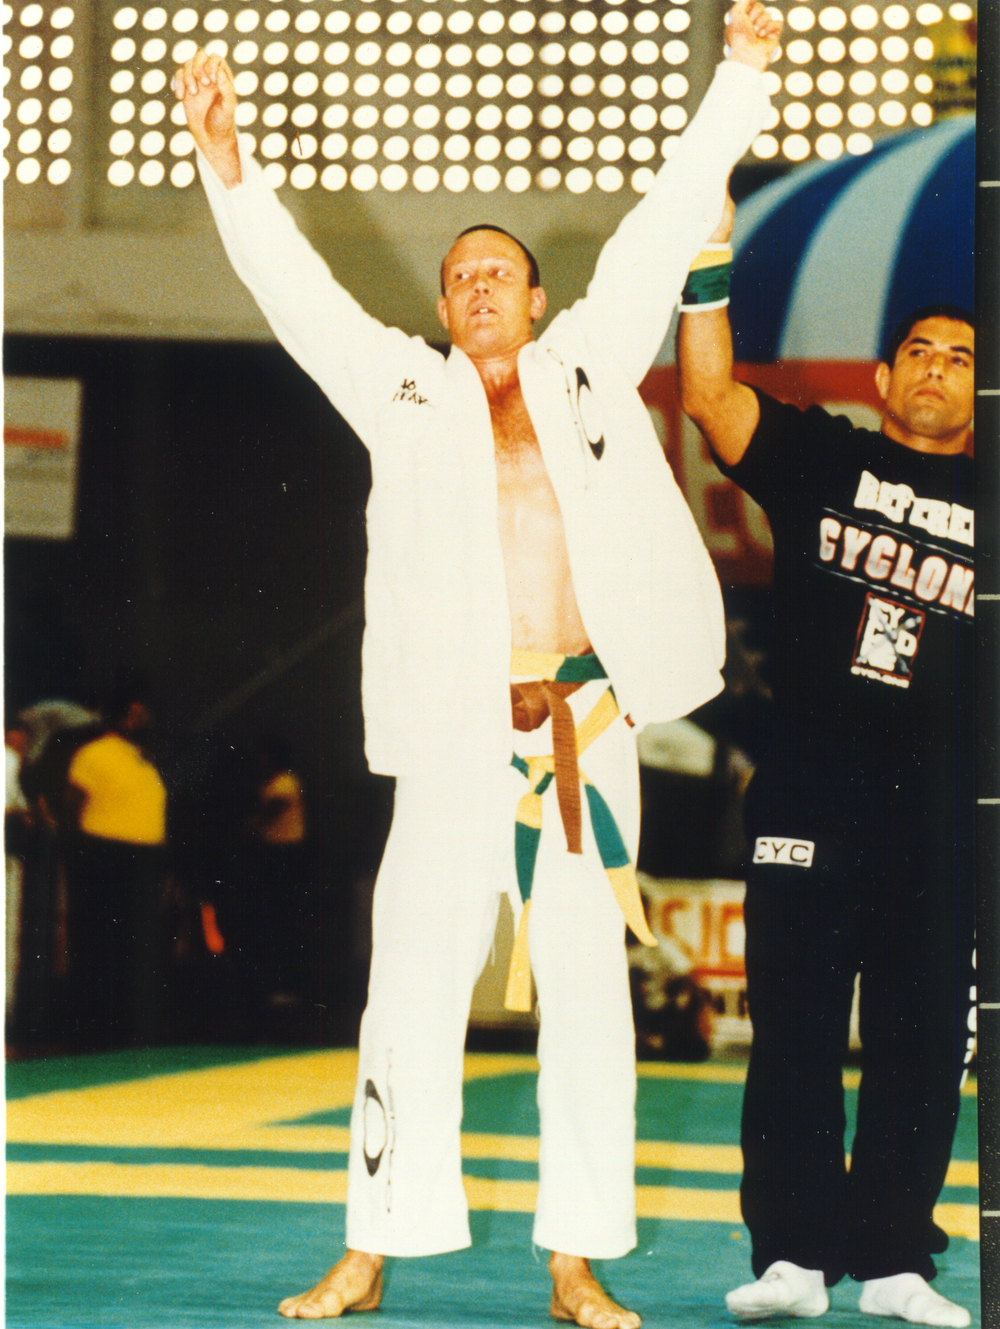 Pete wins brown belt world championships 1997.jpg